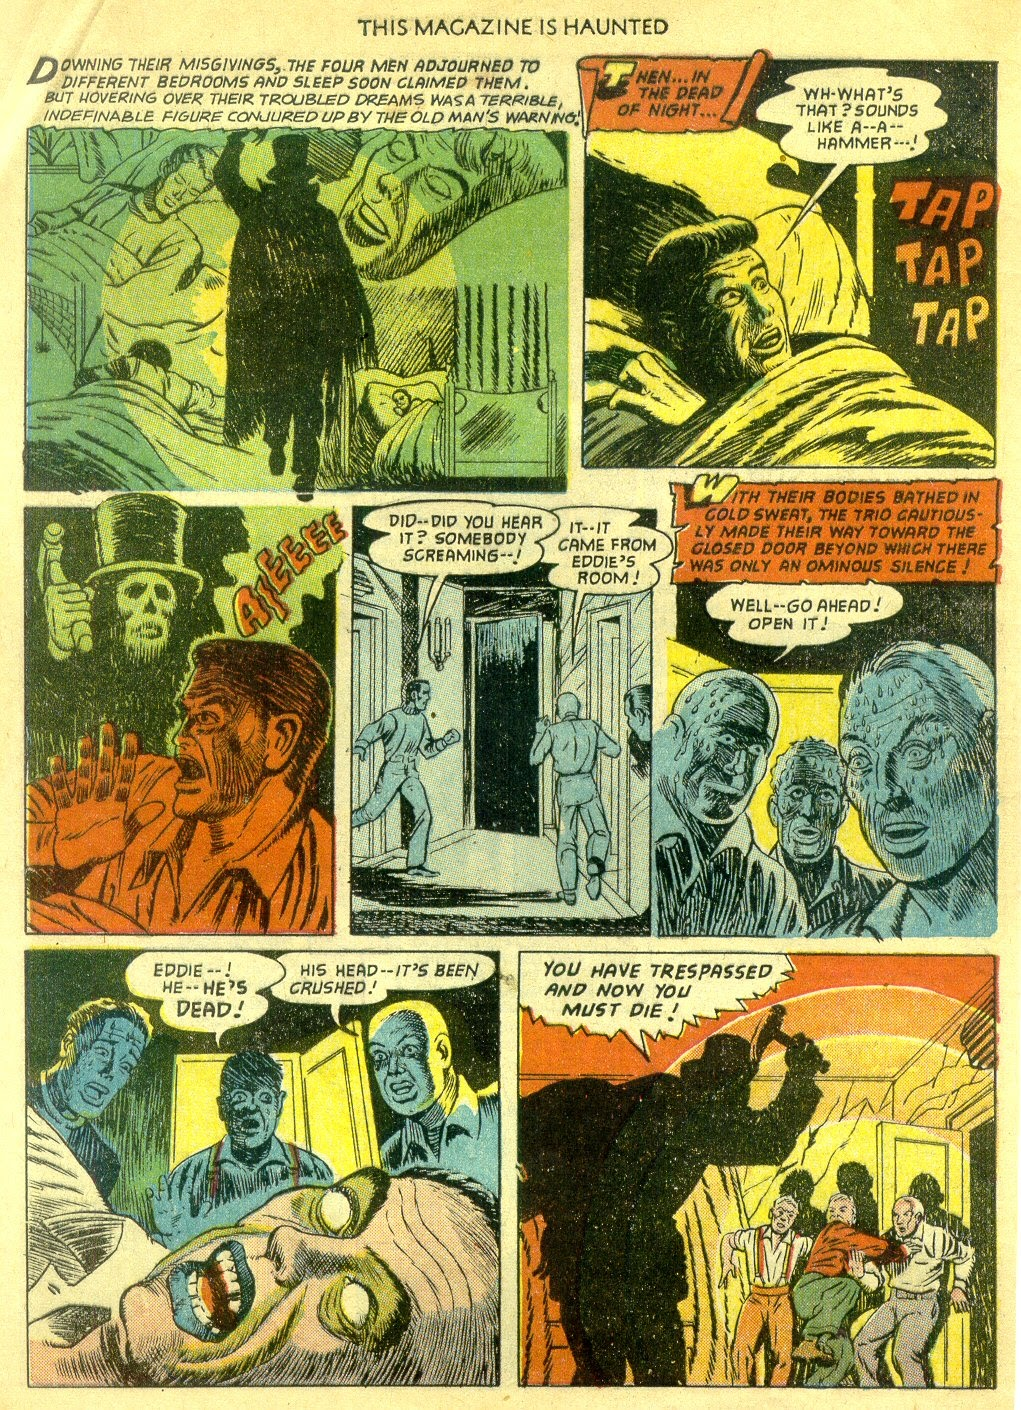 Read online This Magazine Is Haunted comic -  Issue #5 - 27